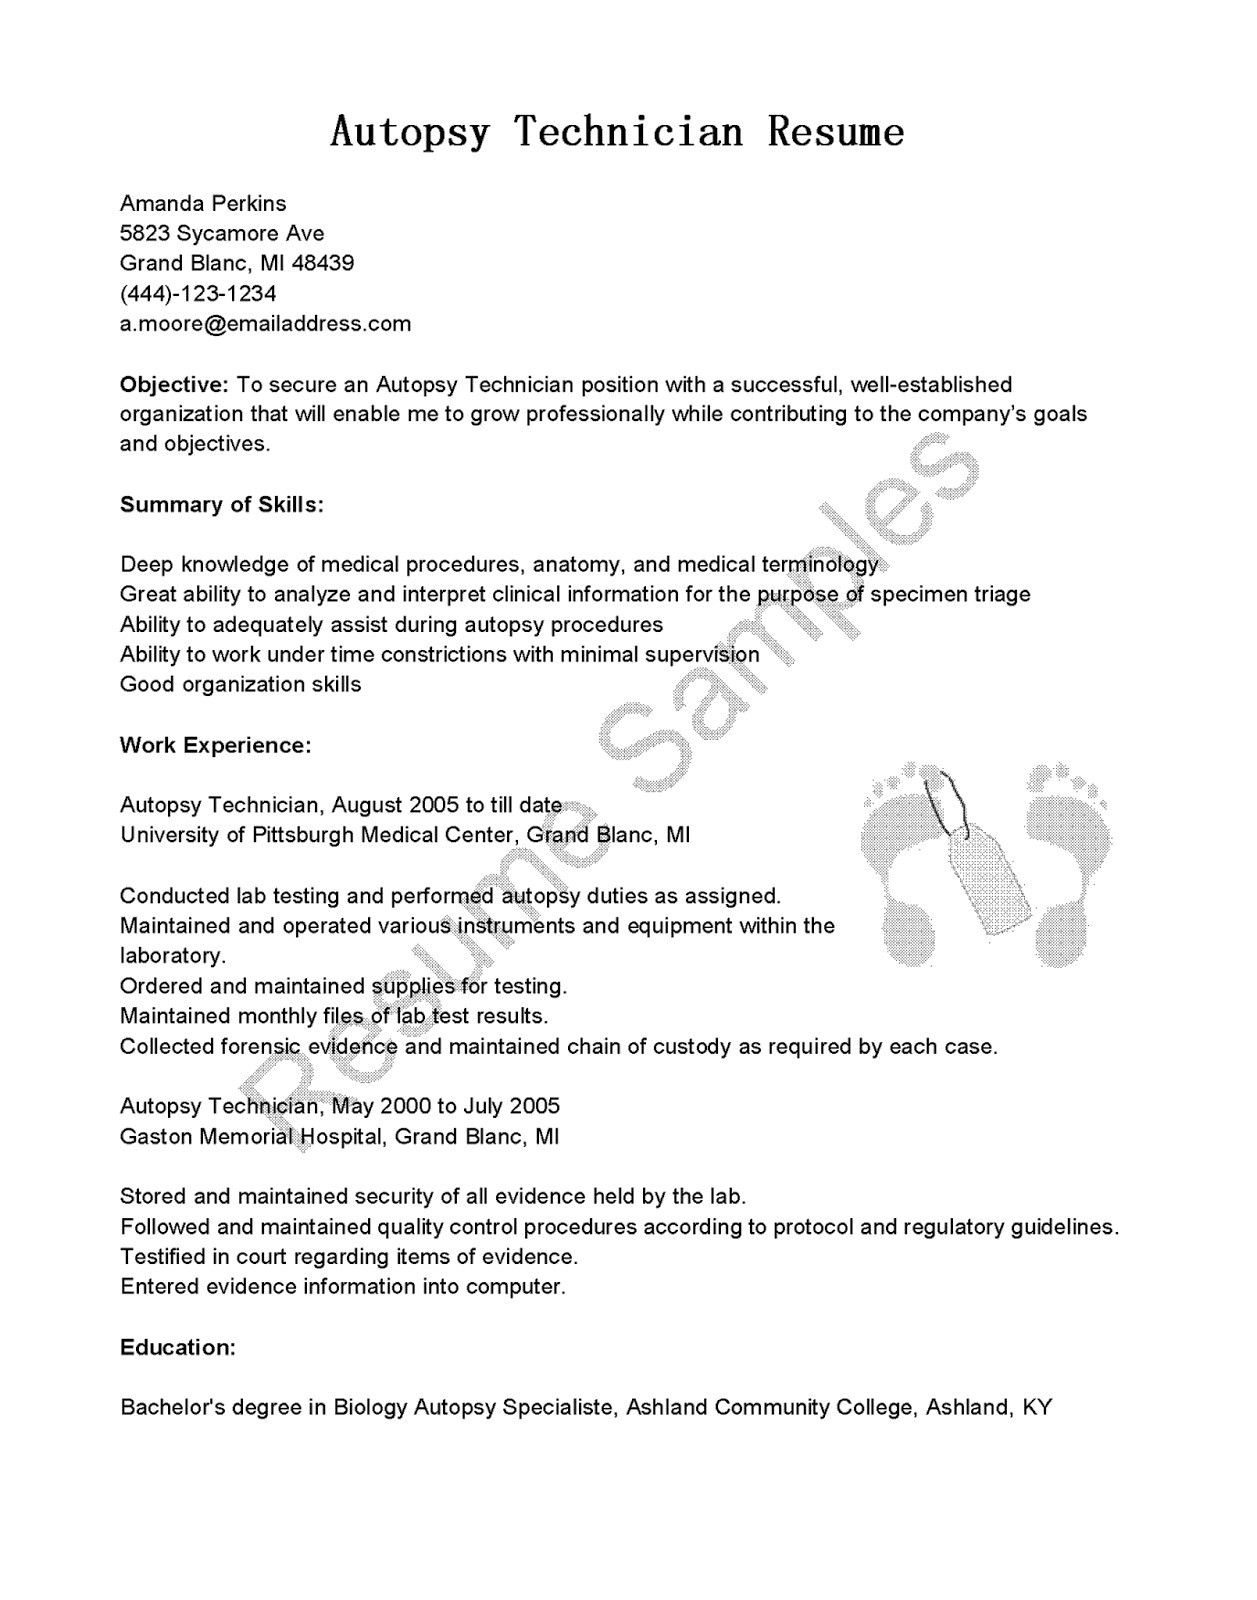 Resume Template for Pages - Resume Template for Pages Luxury Job Application Resume New Best